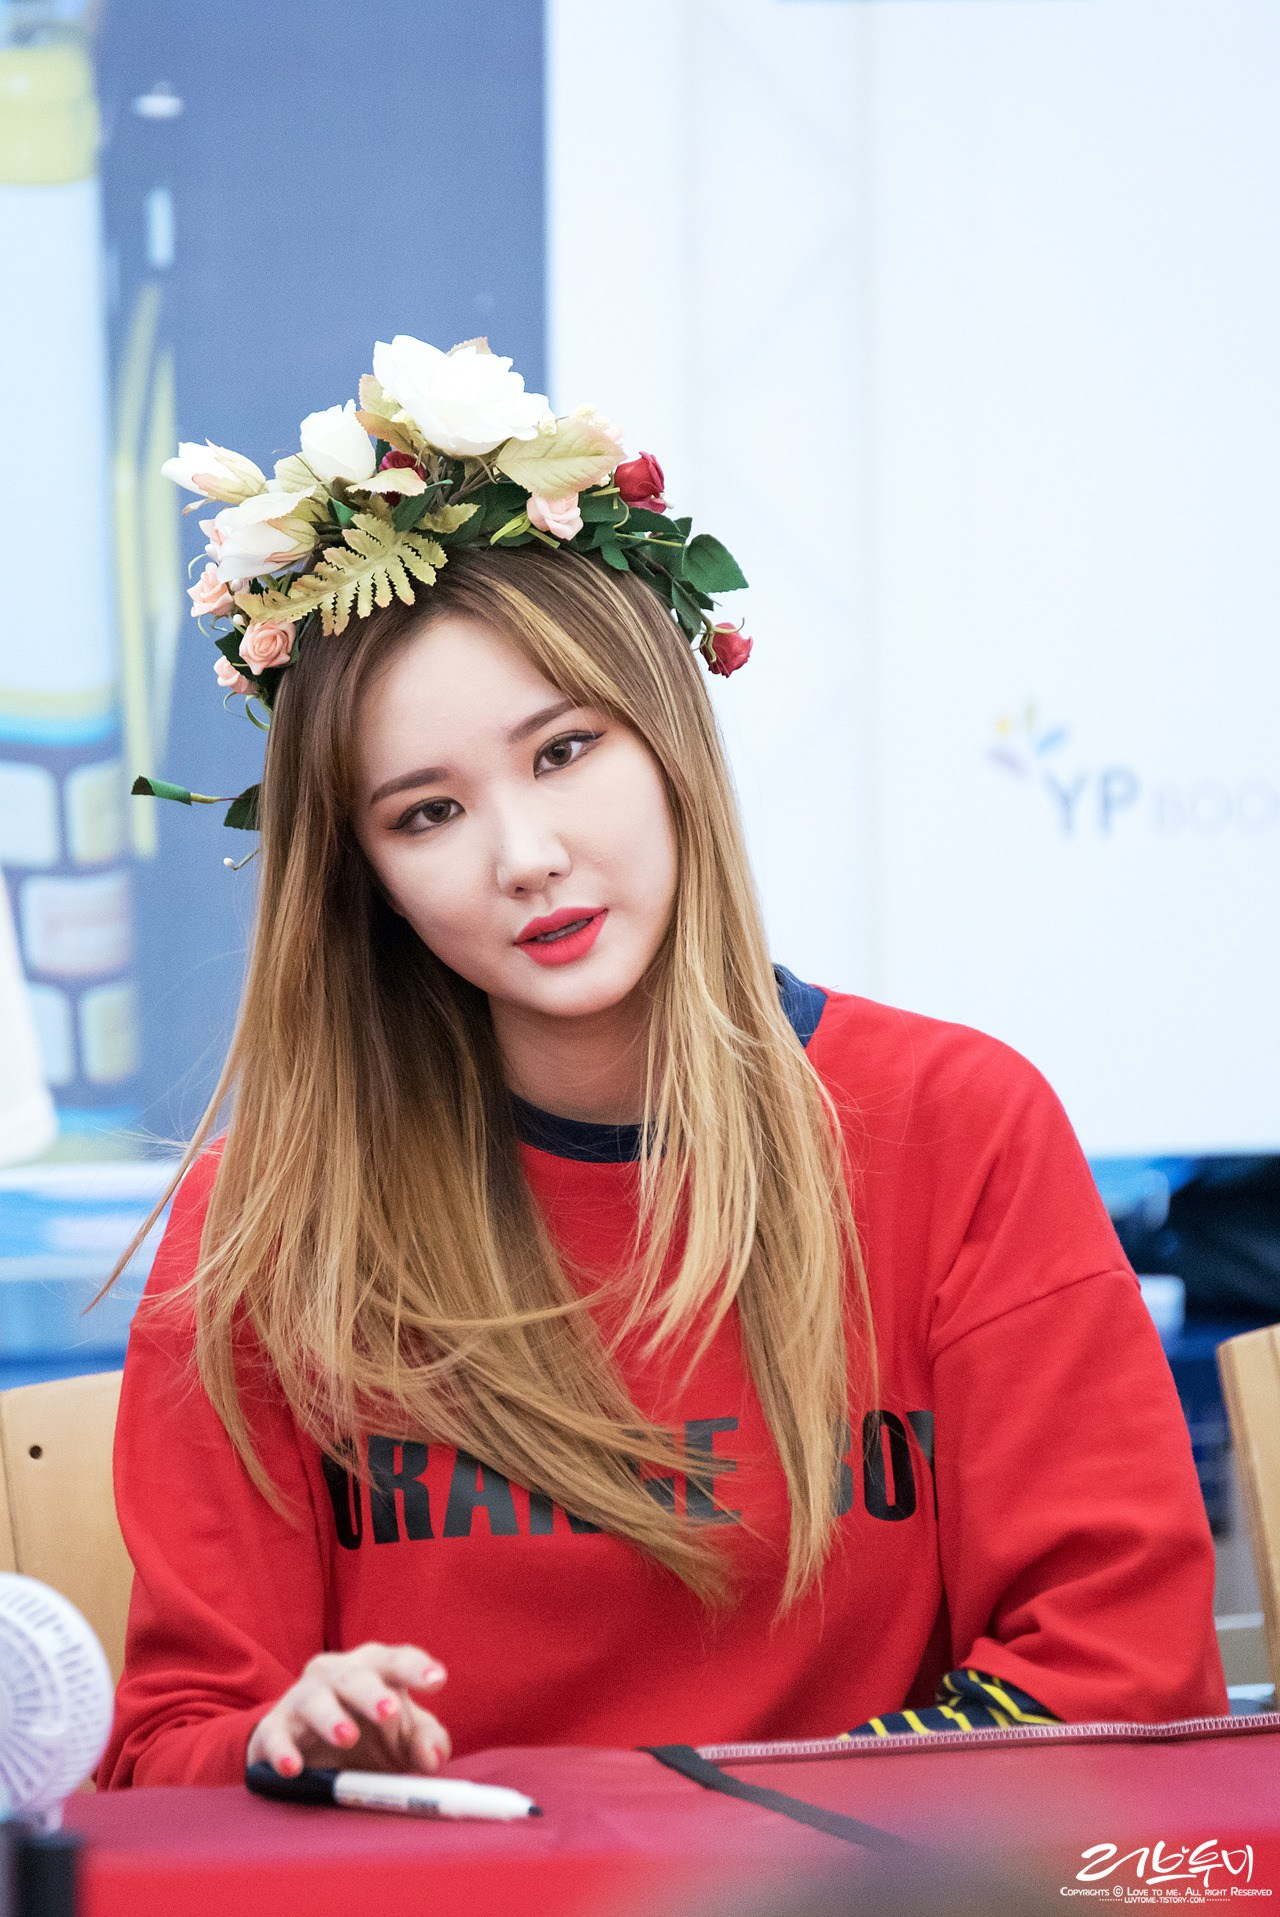 On point and perfectly complimenting this flower-crown look!